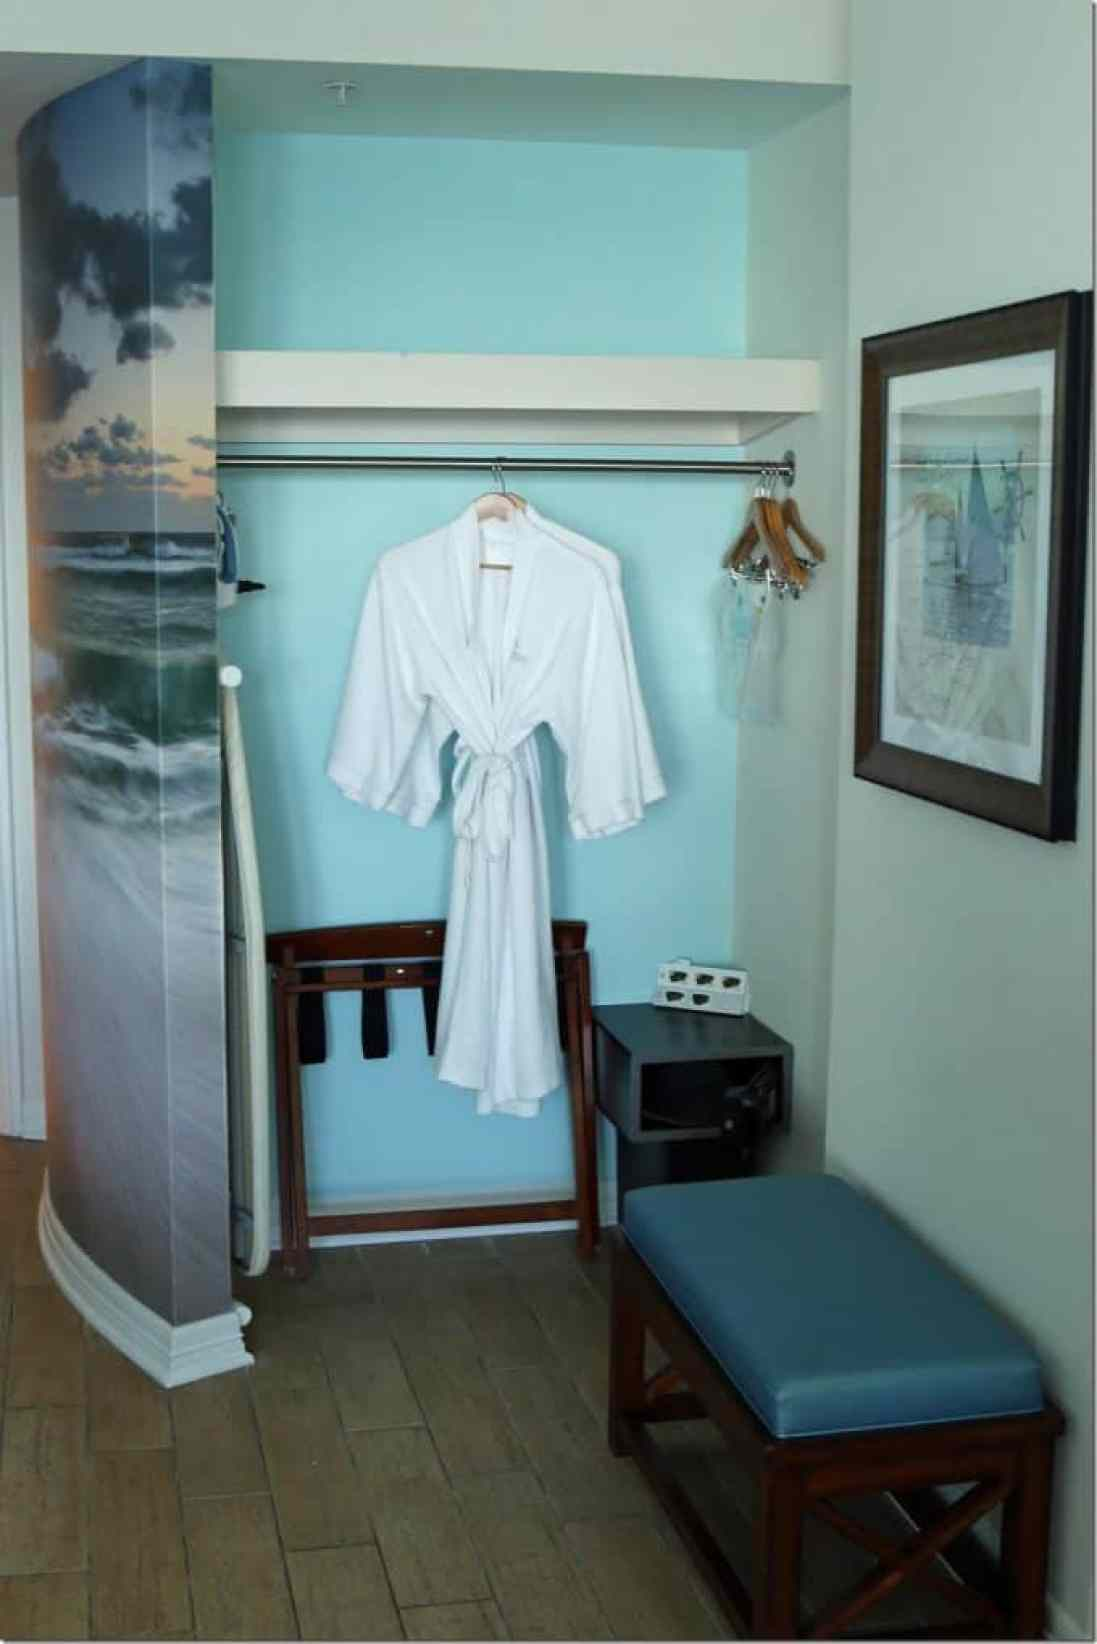 robes and safe in Margaritaville Pensacola